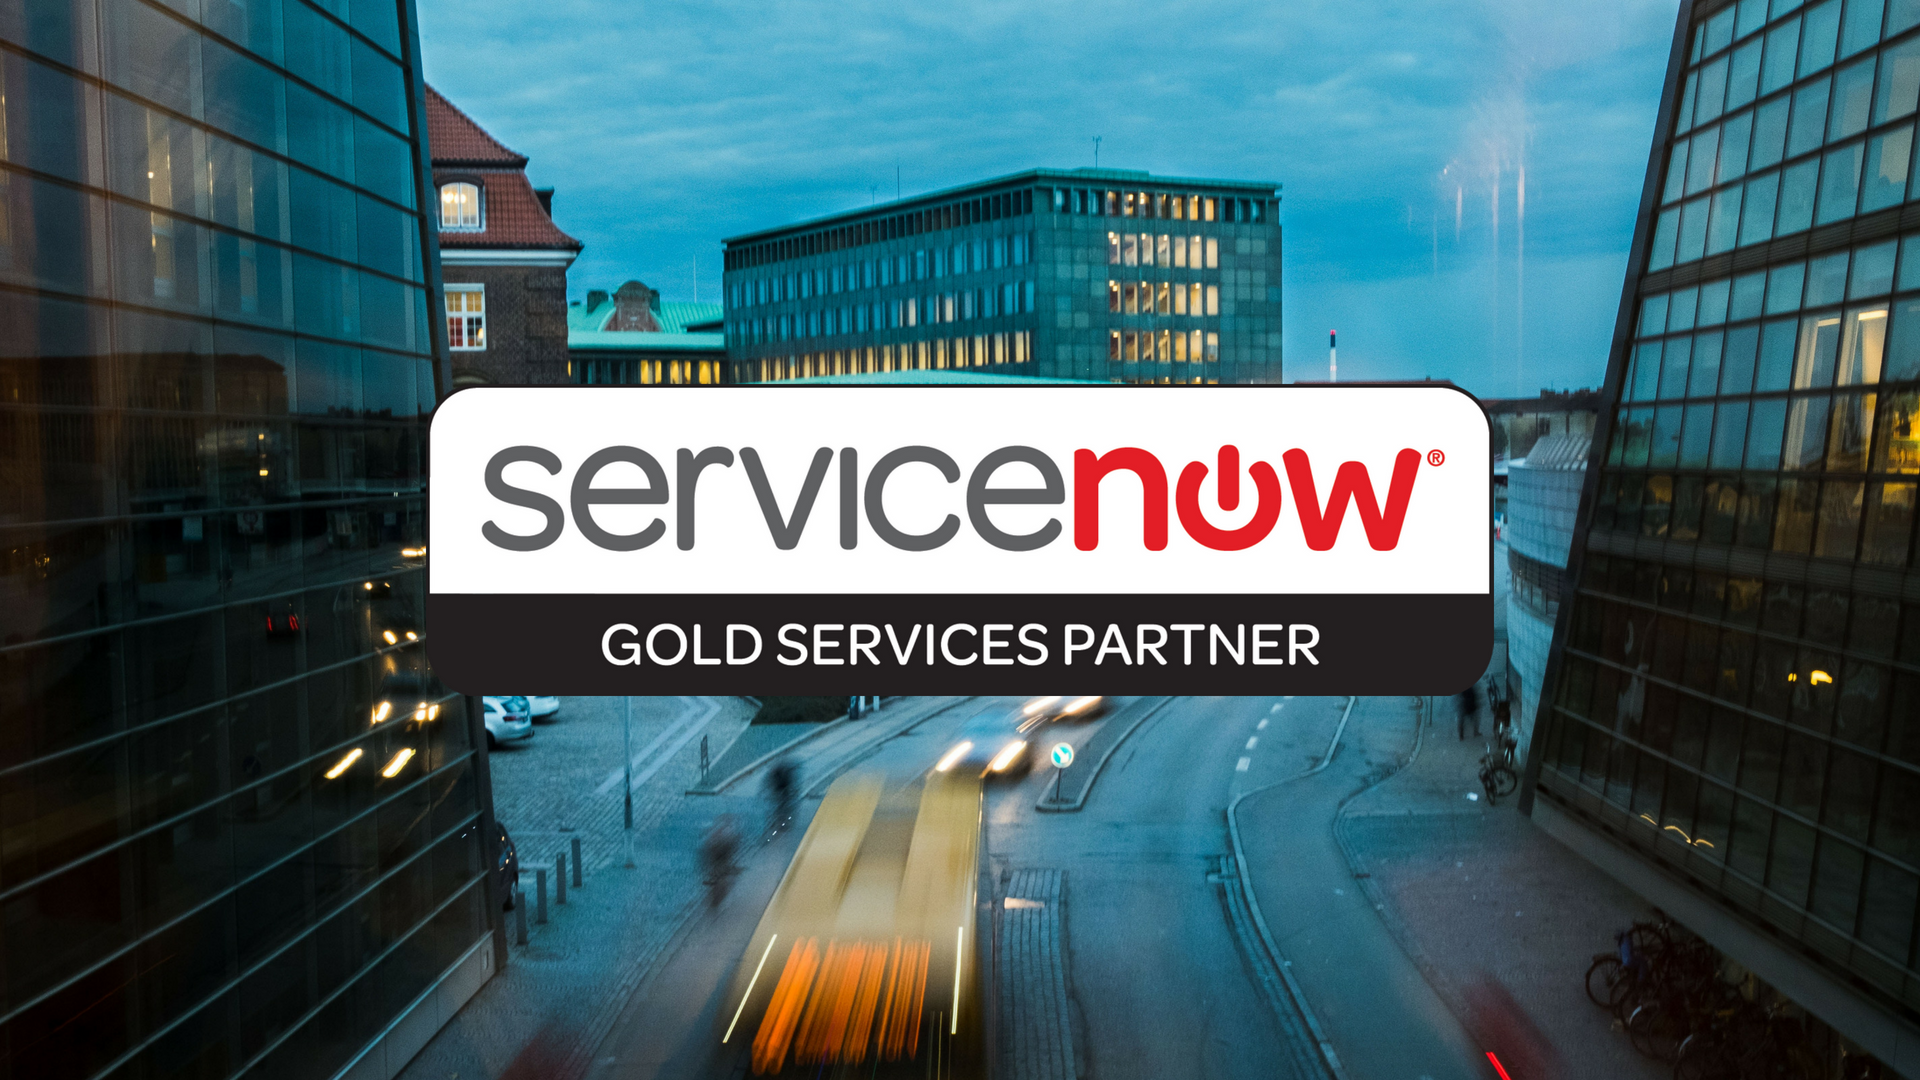 ServiceNow gold services partner